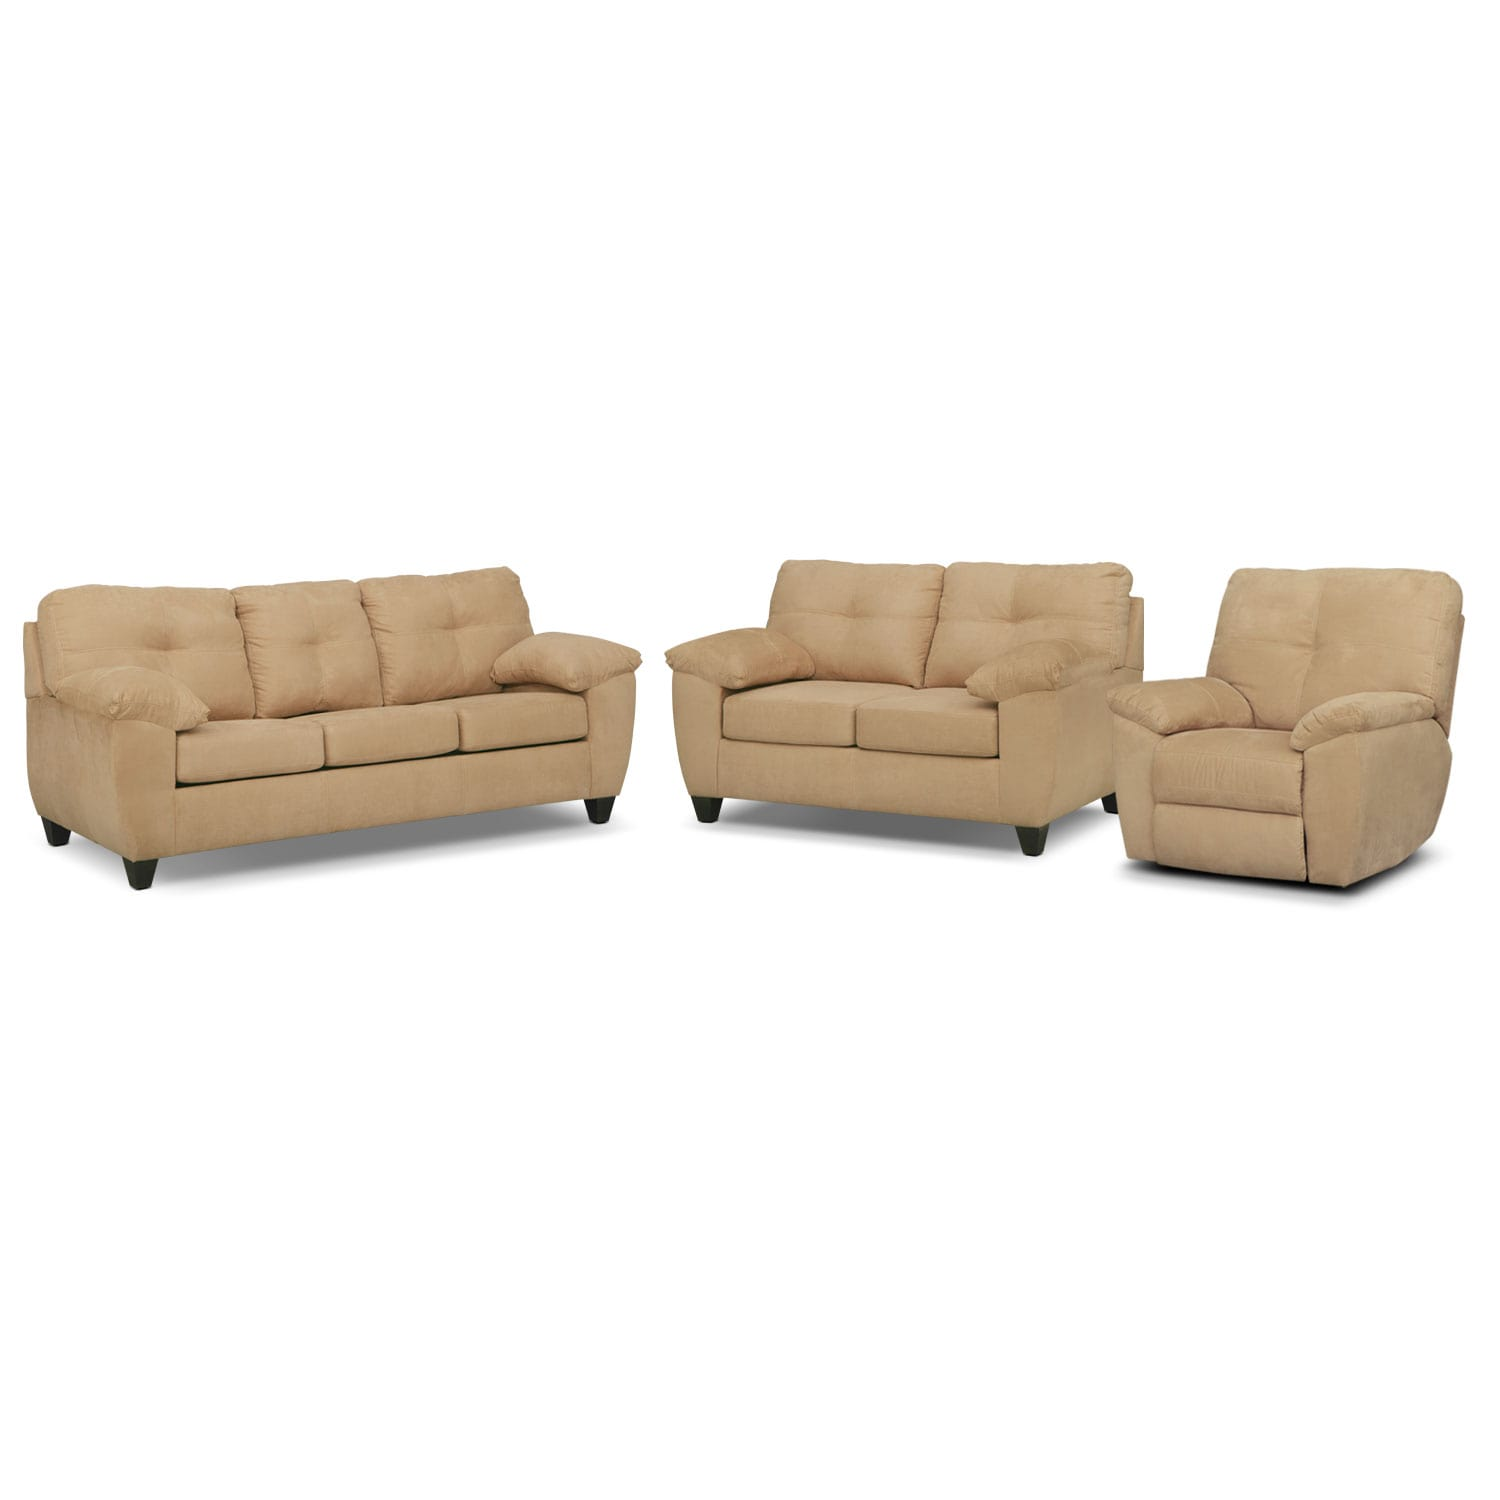 Rialto Sofa, Loveseat and Glider Recliner Set - Camel